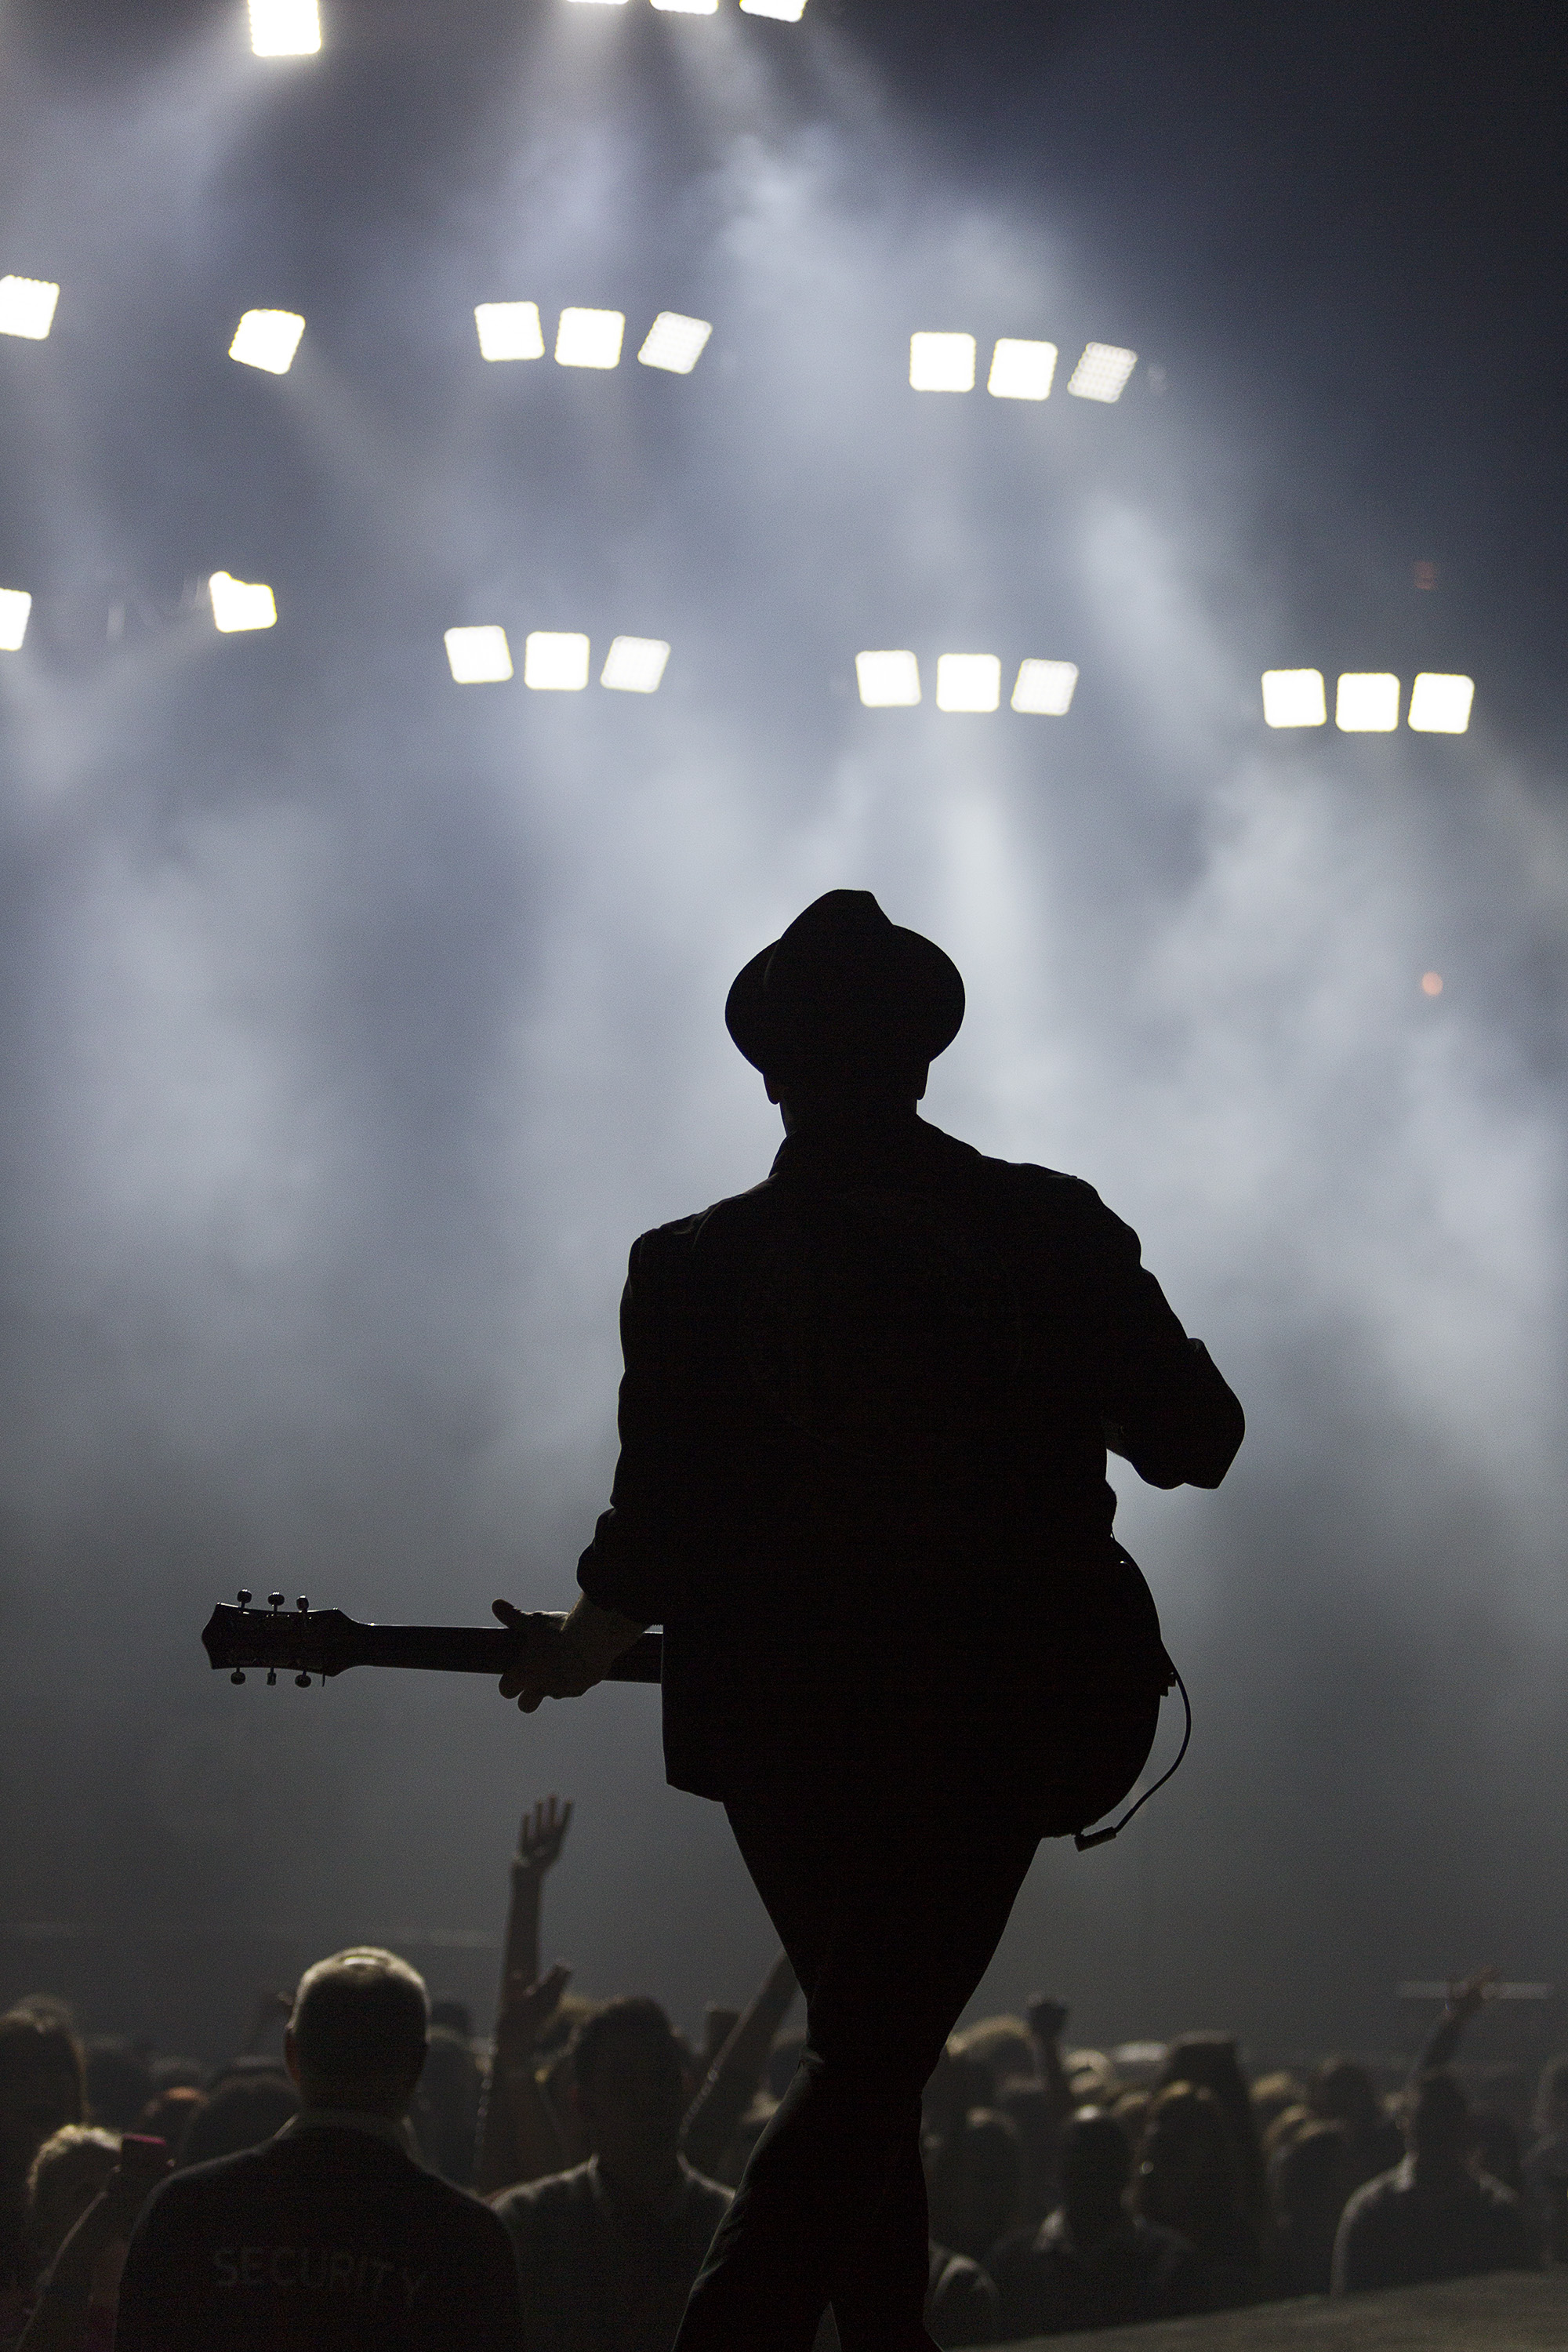 Patrick Stump, lead singer of rock band Fall Out Boy, performs during a show at the United Center, March 12.